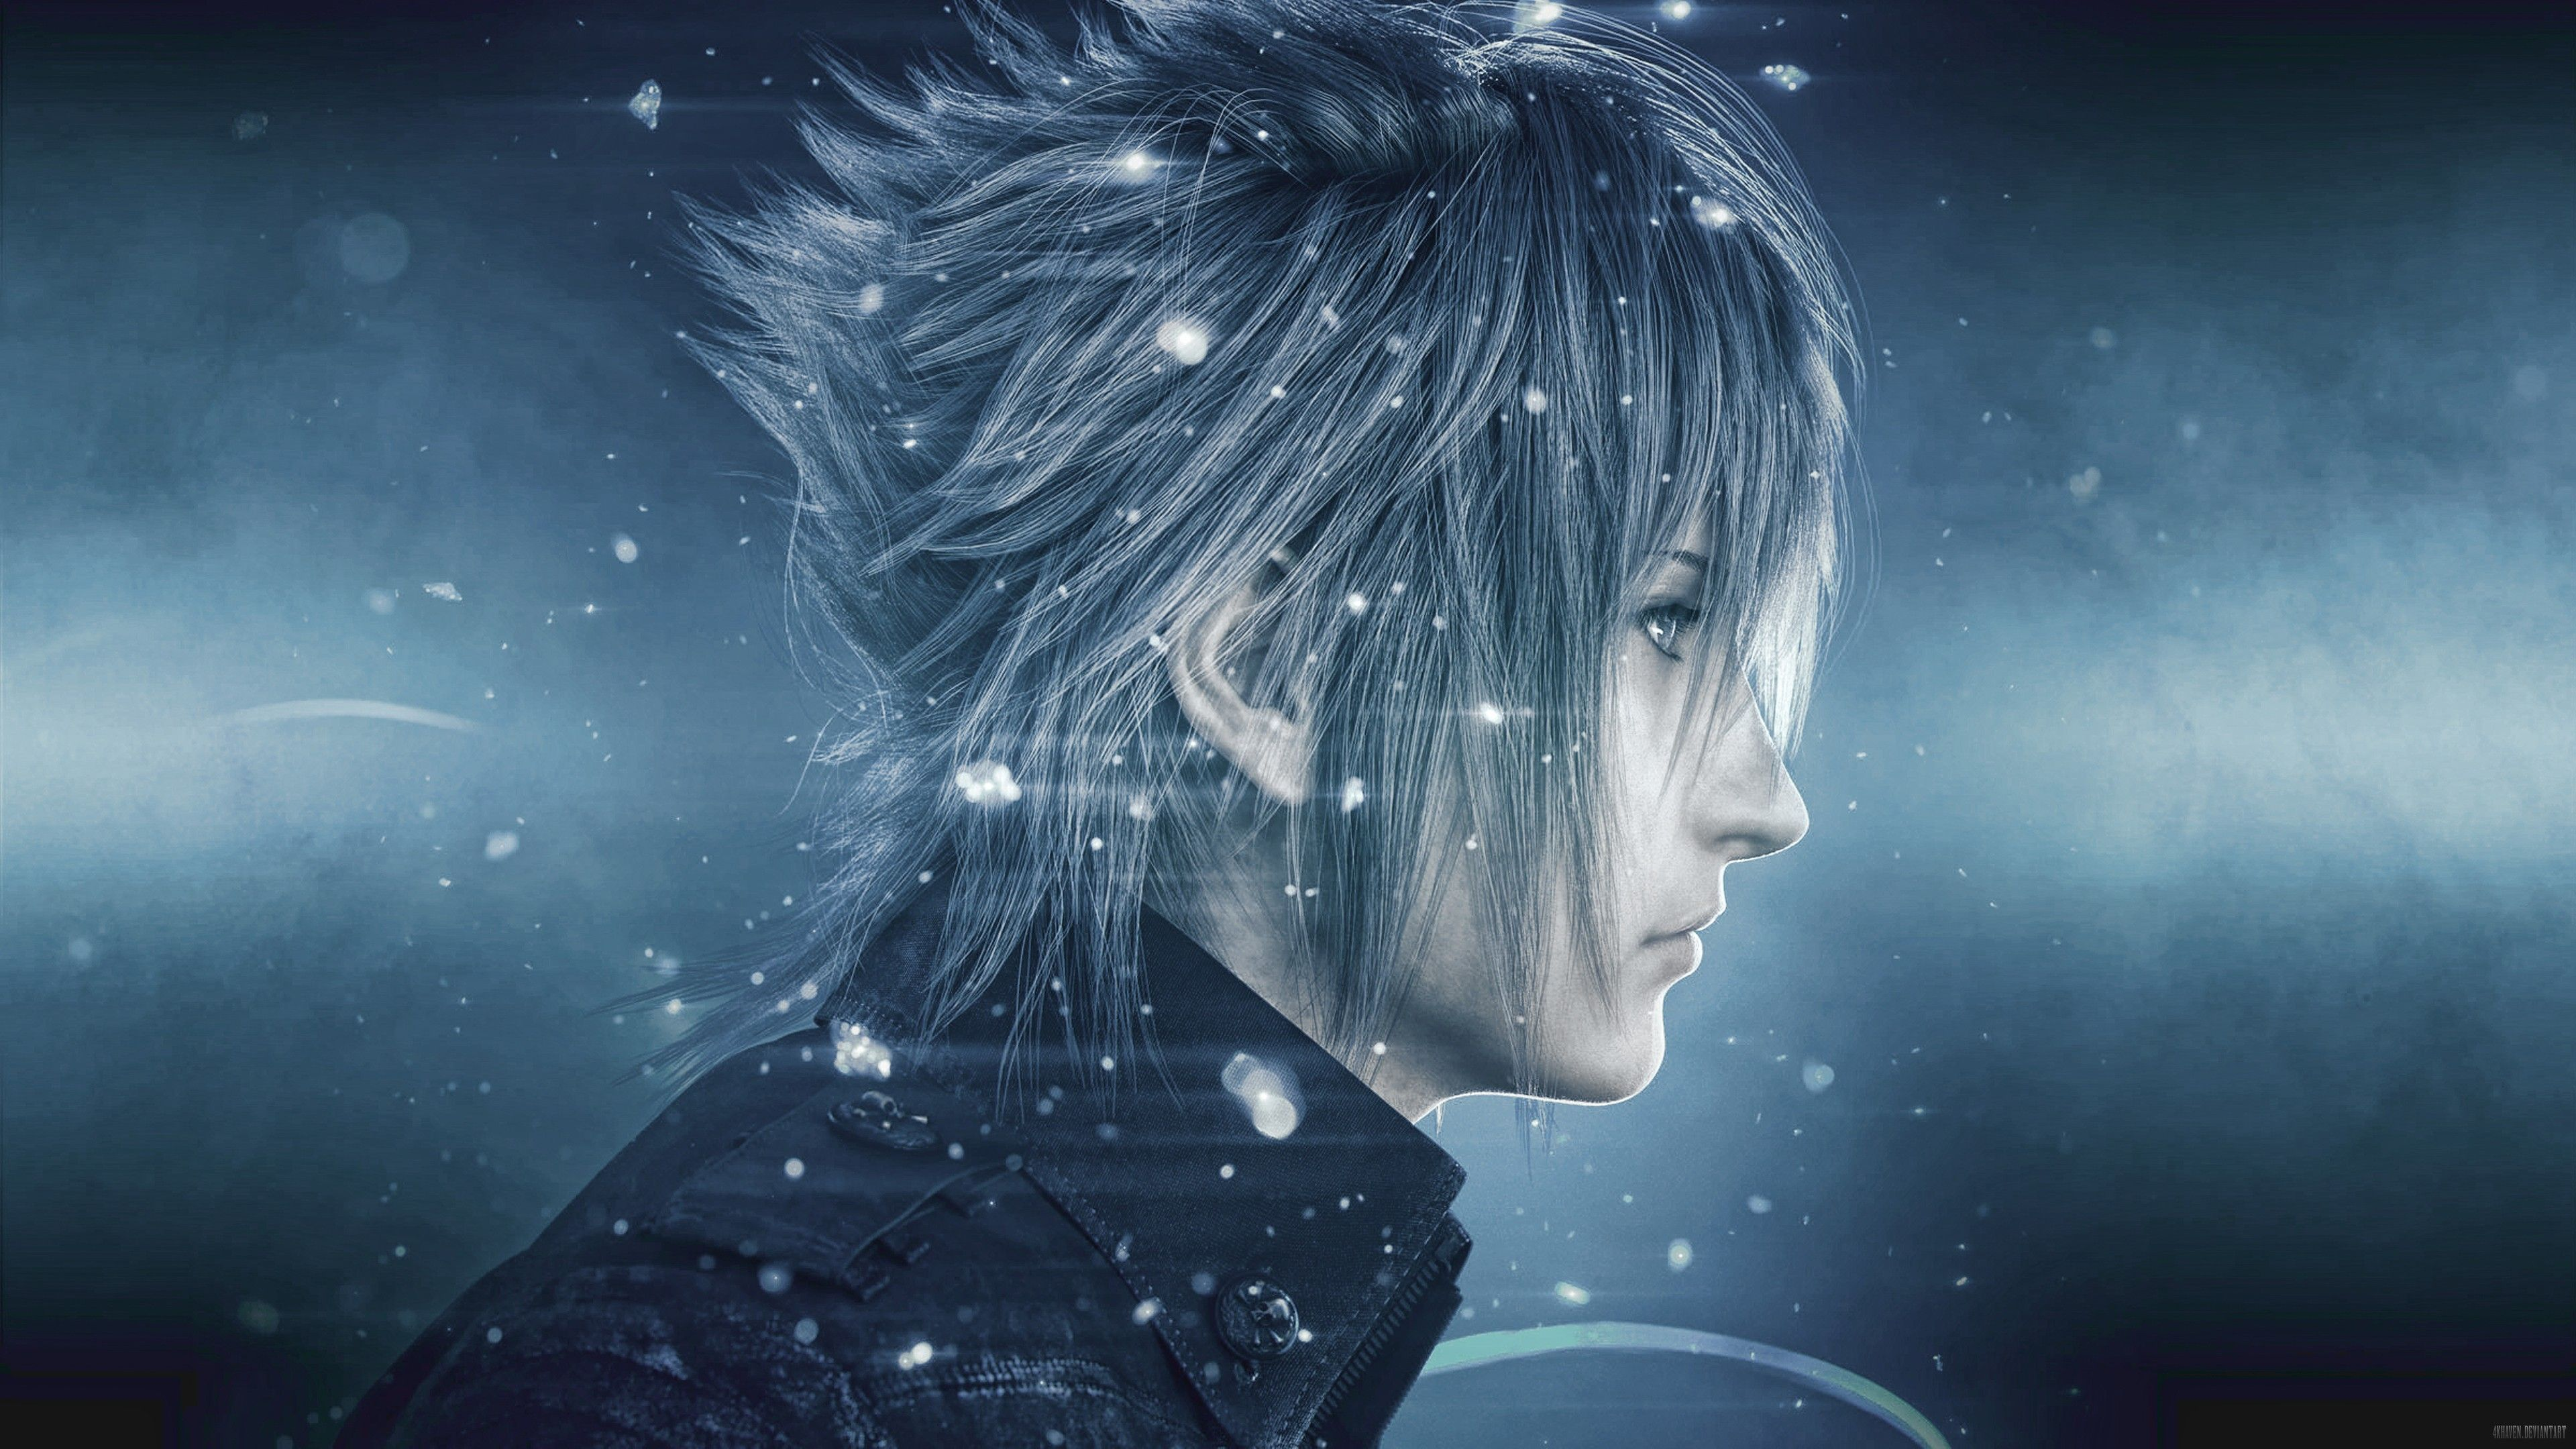 Final Fantasy Xv 4k Ultra Hd Wallpaper: Final Fantasy XV Noctis, HD Games, 4k Wallpapers, Images